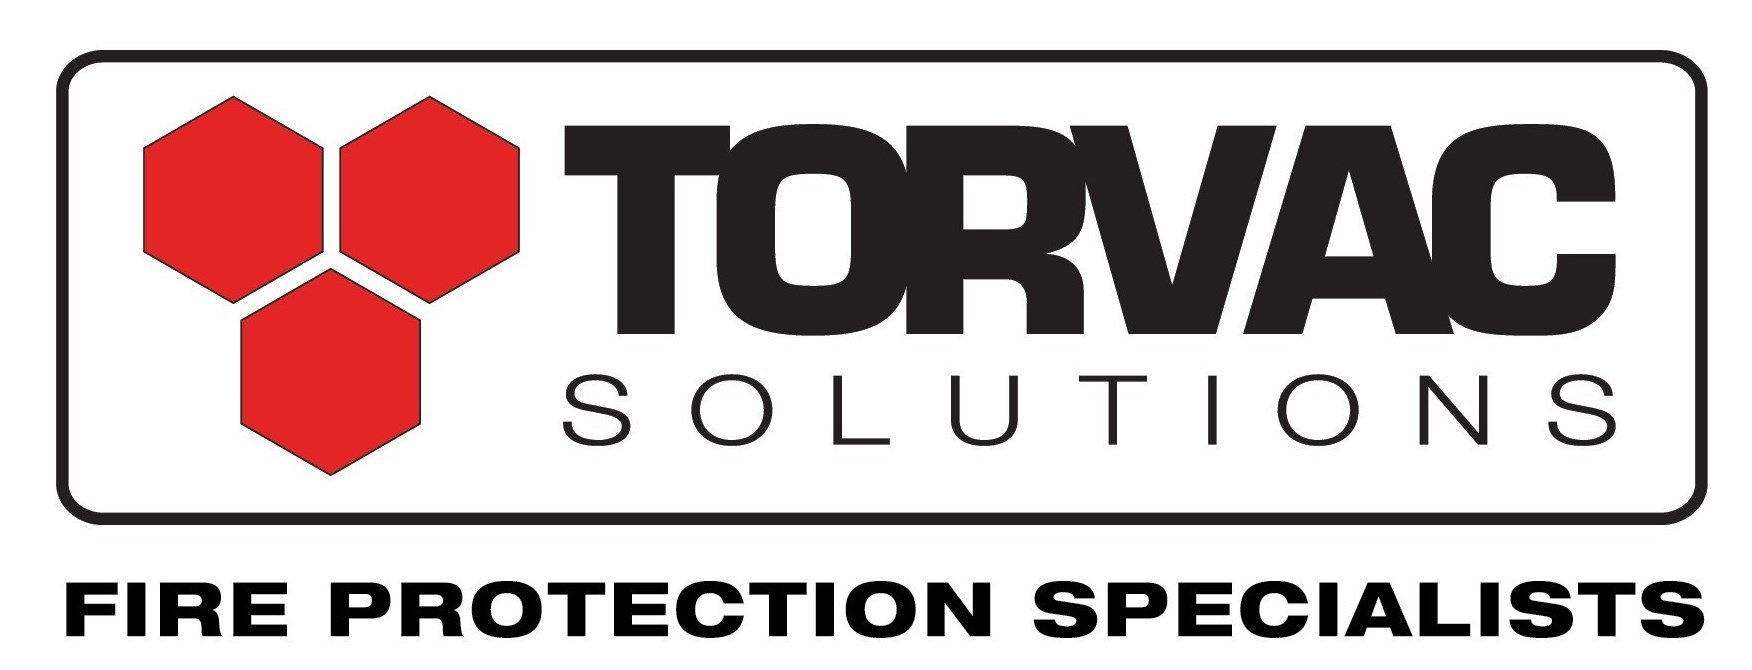 Torvac Solutions